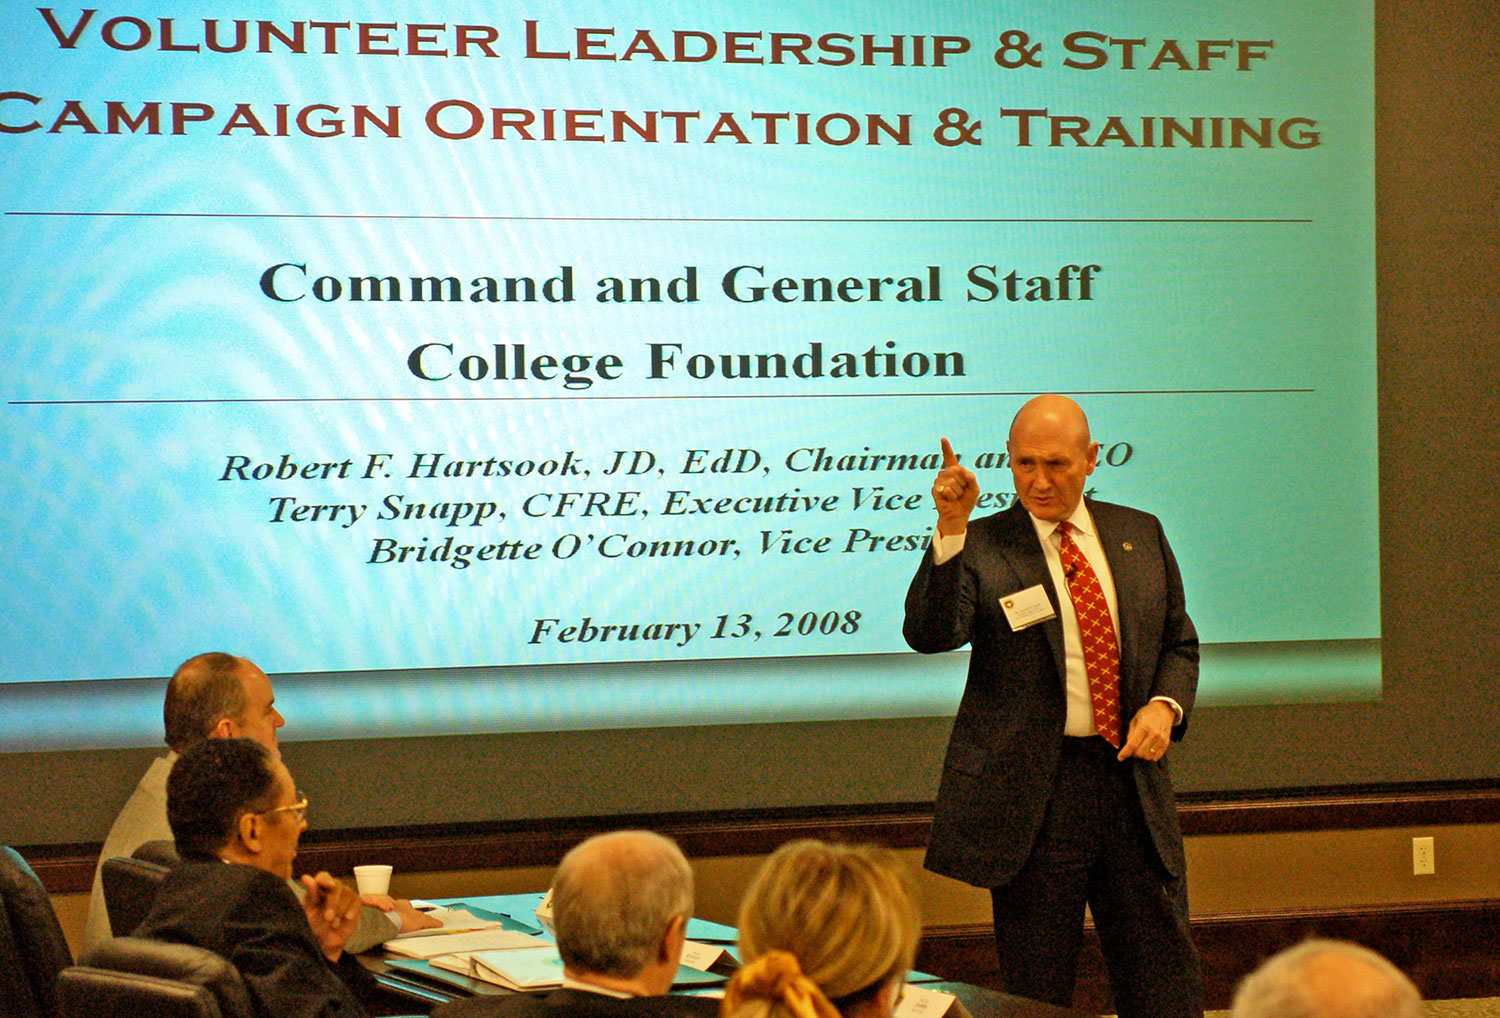 Hyrum Smith delivers motivational remarks to members of the CGSC Foundation board of trustees at a special meeting conducted Feb. 13, 2008, in the Arnold Conference Room of the Lewis and Clark Center on Fort Leavenworth. (photo by Mark H. Wiggins)